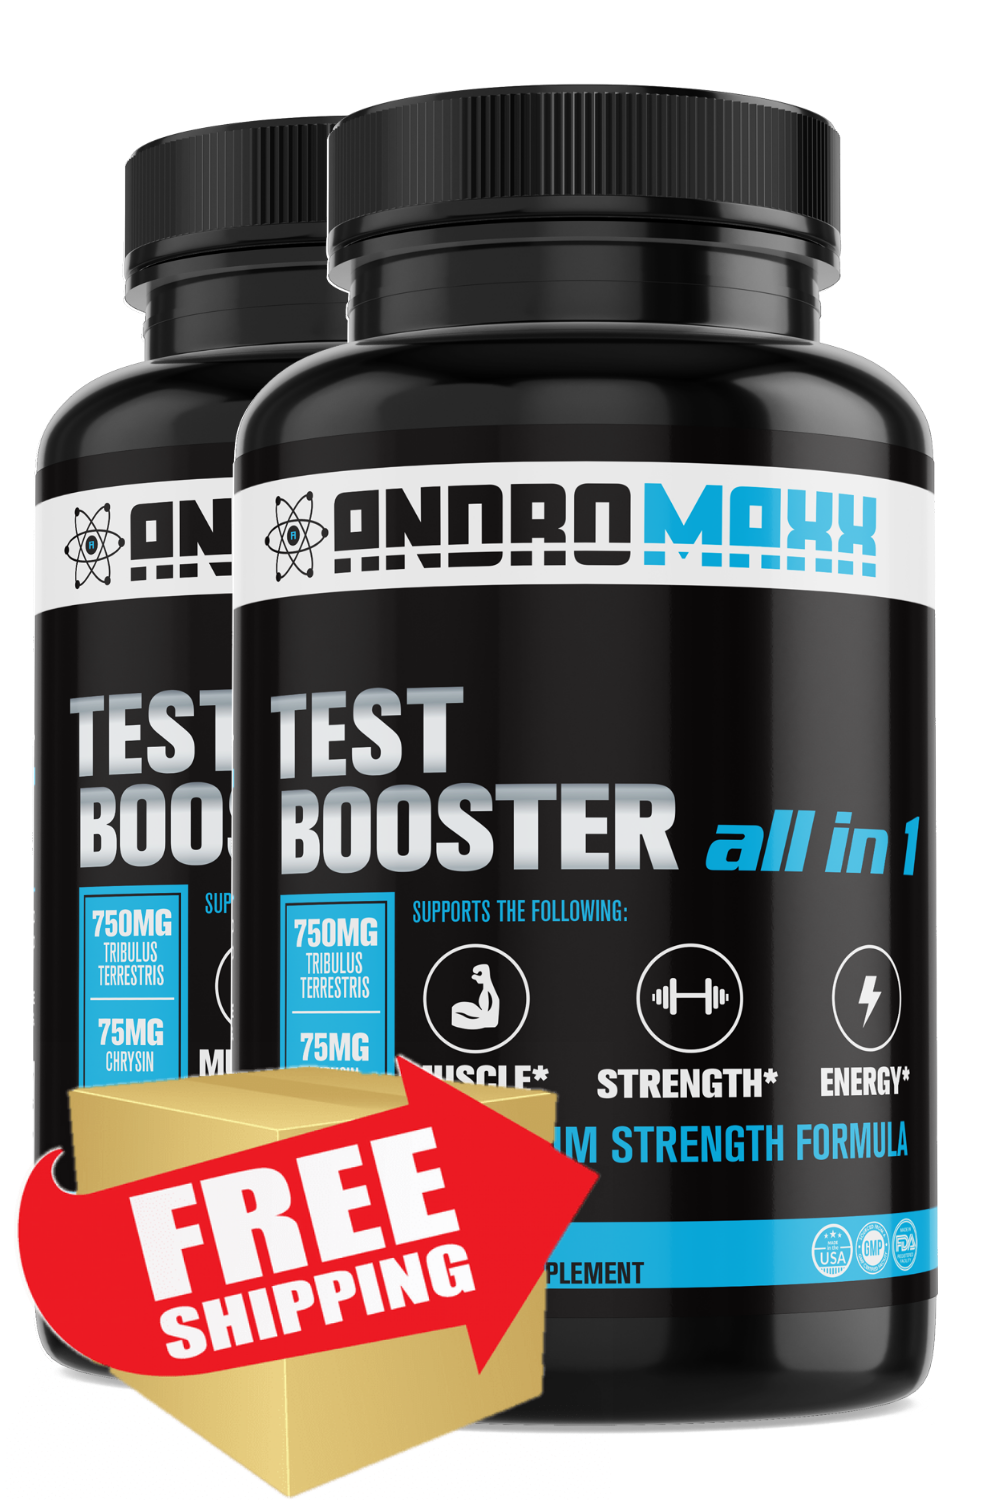 Andromaxx Supplement - Safe or Risky?